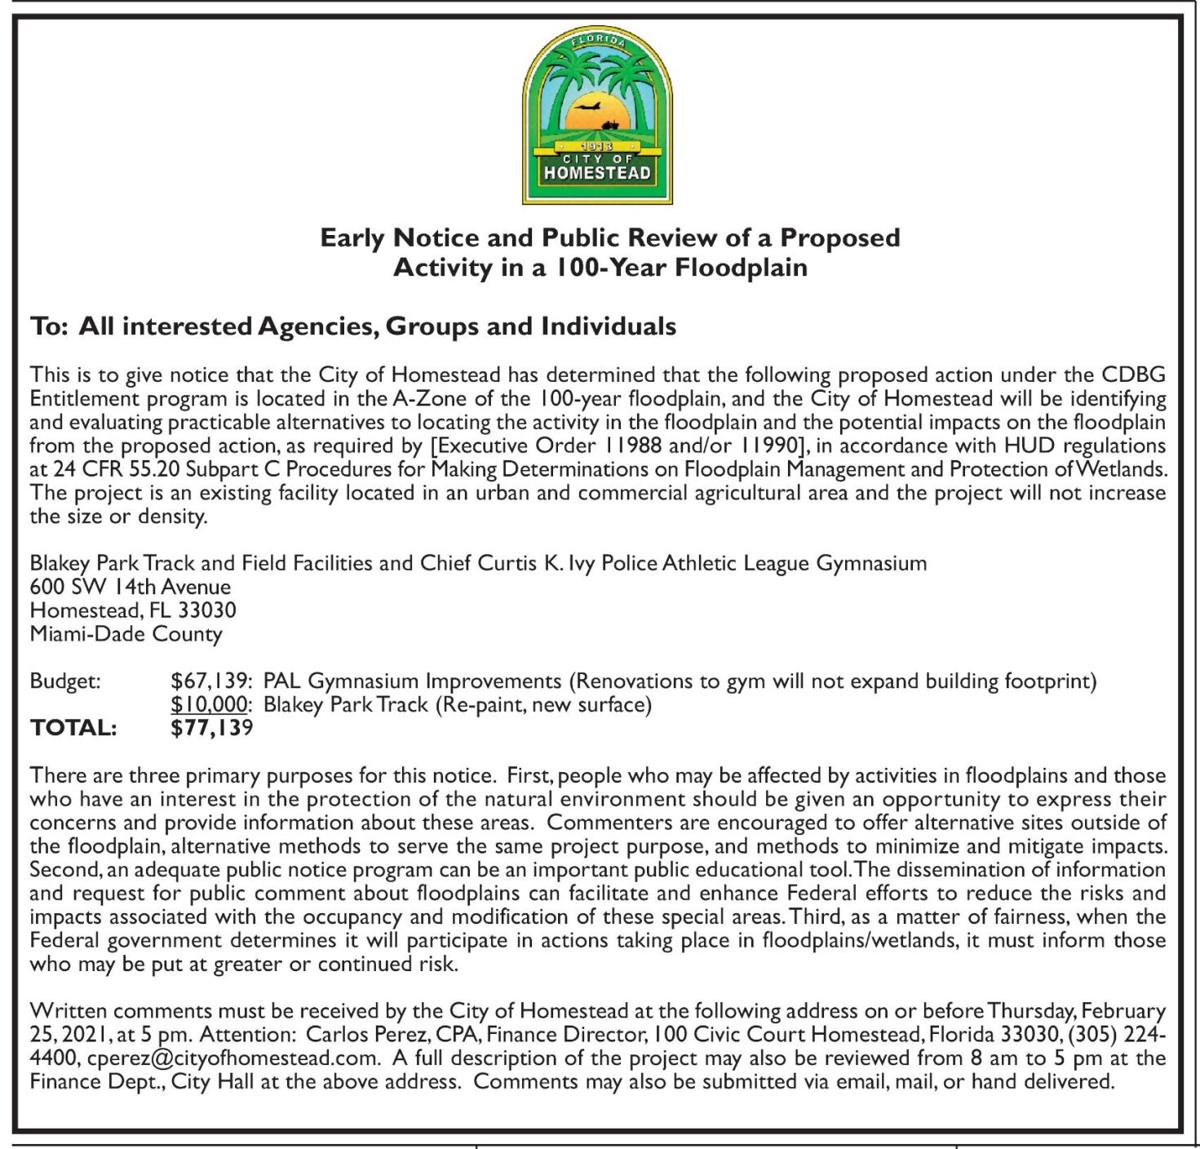 City of Homestead - Early Notice and Public Review of a Proposed Activity in a 11-Year Floodplain